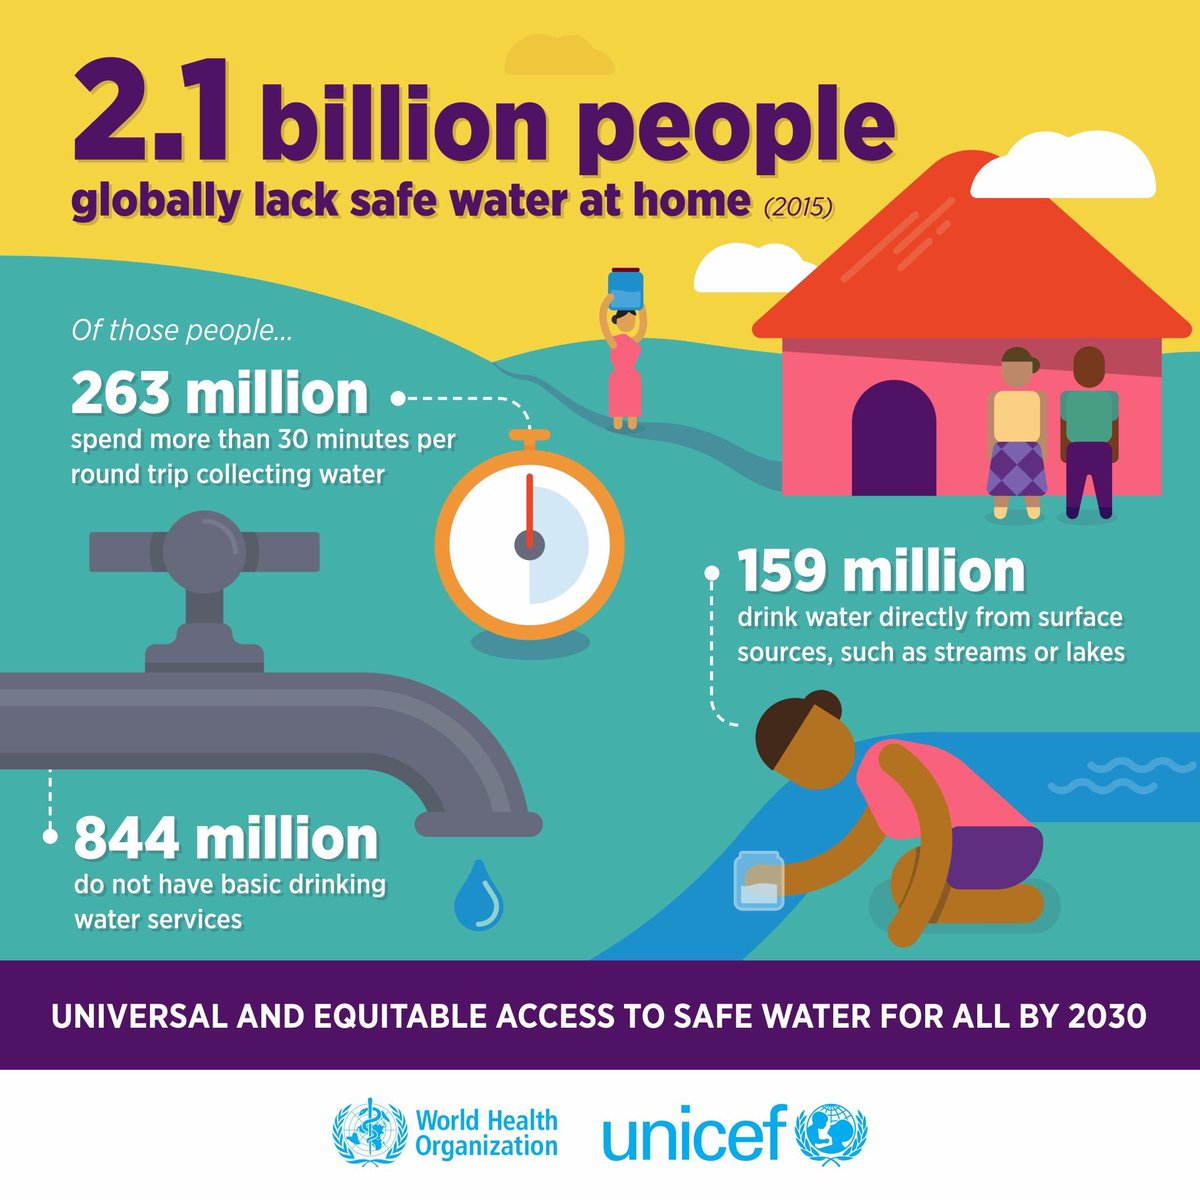 Today is #WorldWaterDay💧  2.1 billion people lack safe water at home, putting them at risk of: Cholera Diarrhoea Dysentery Hepatitis A Typhoid Polio https://t.co/Mc0eHtkrNG